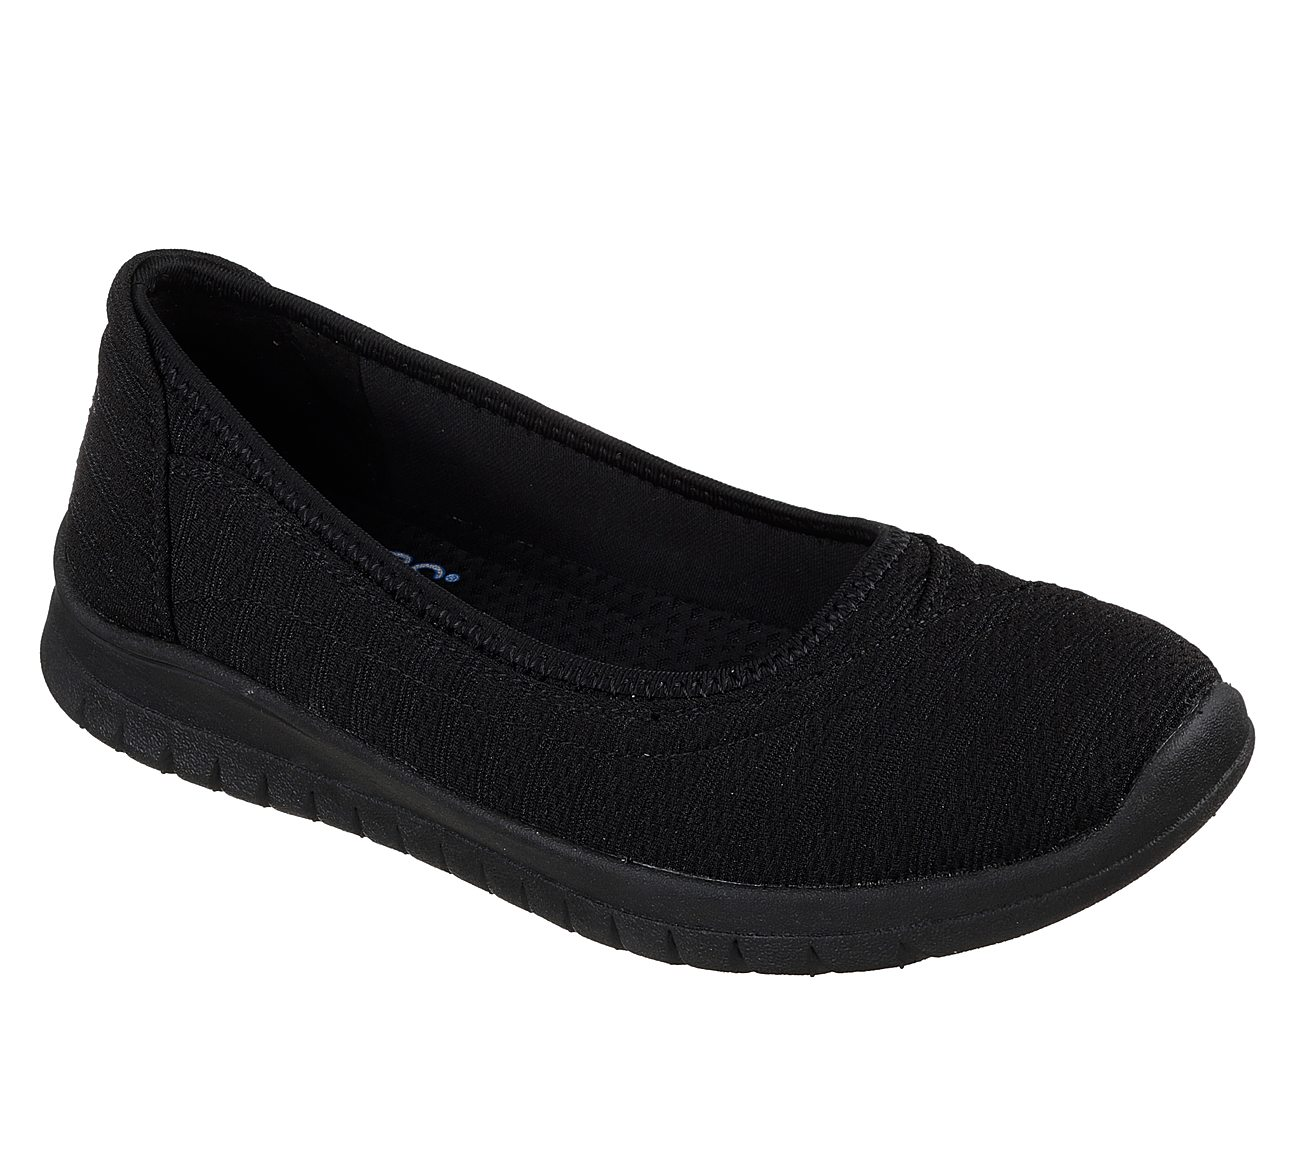 Skechers BOBS Pureflex 3 Catch Em Skimmer (Women's) uvUcy6a